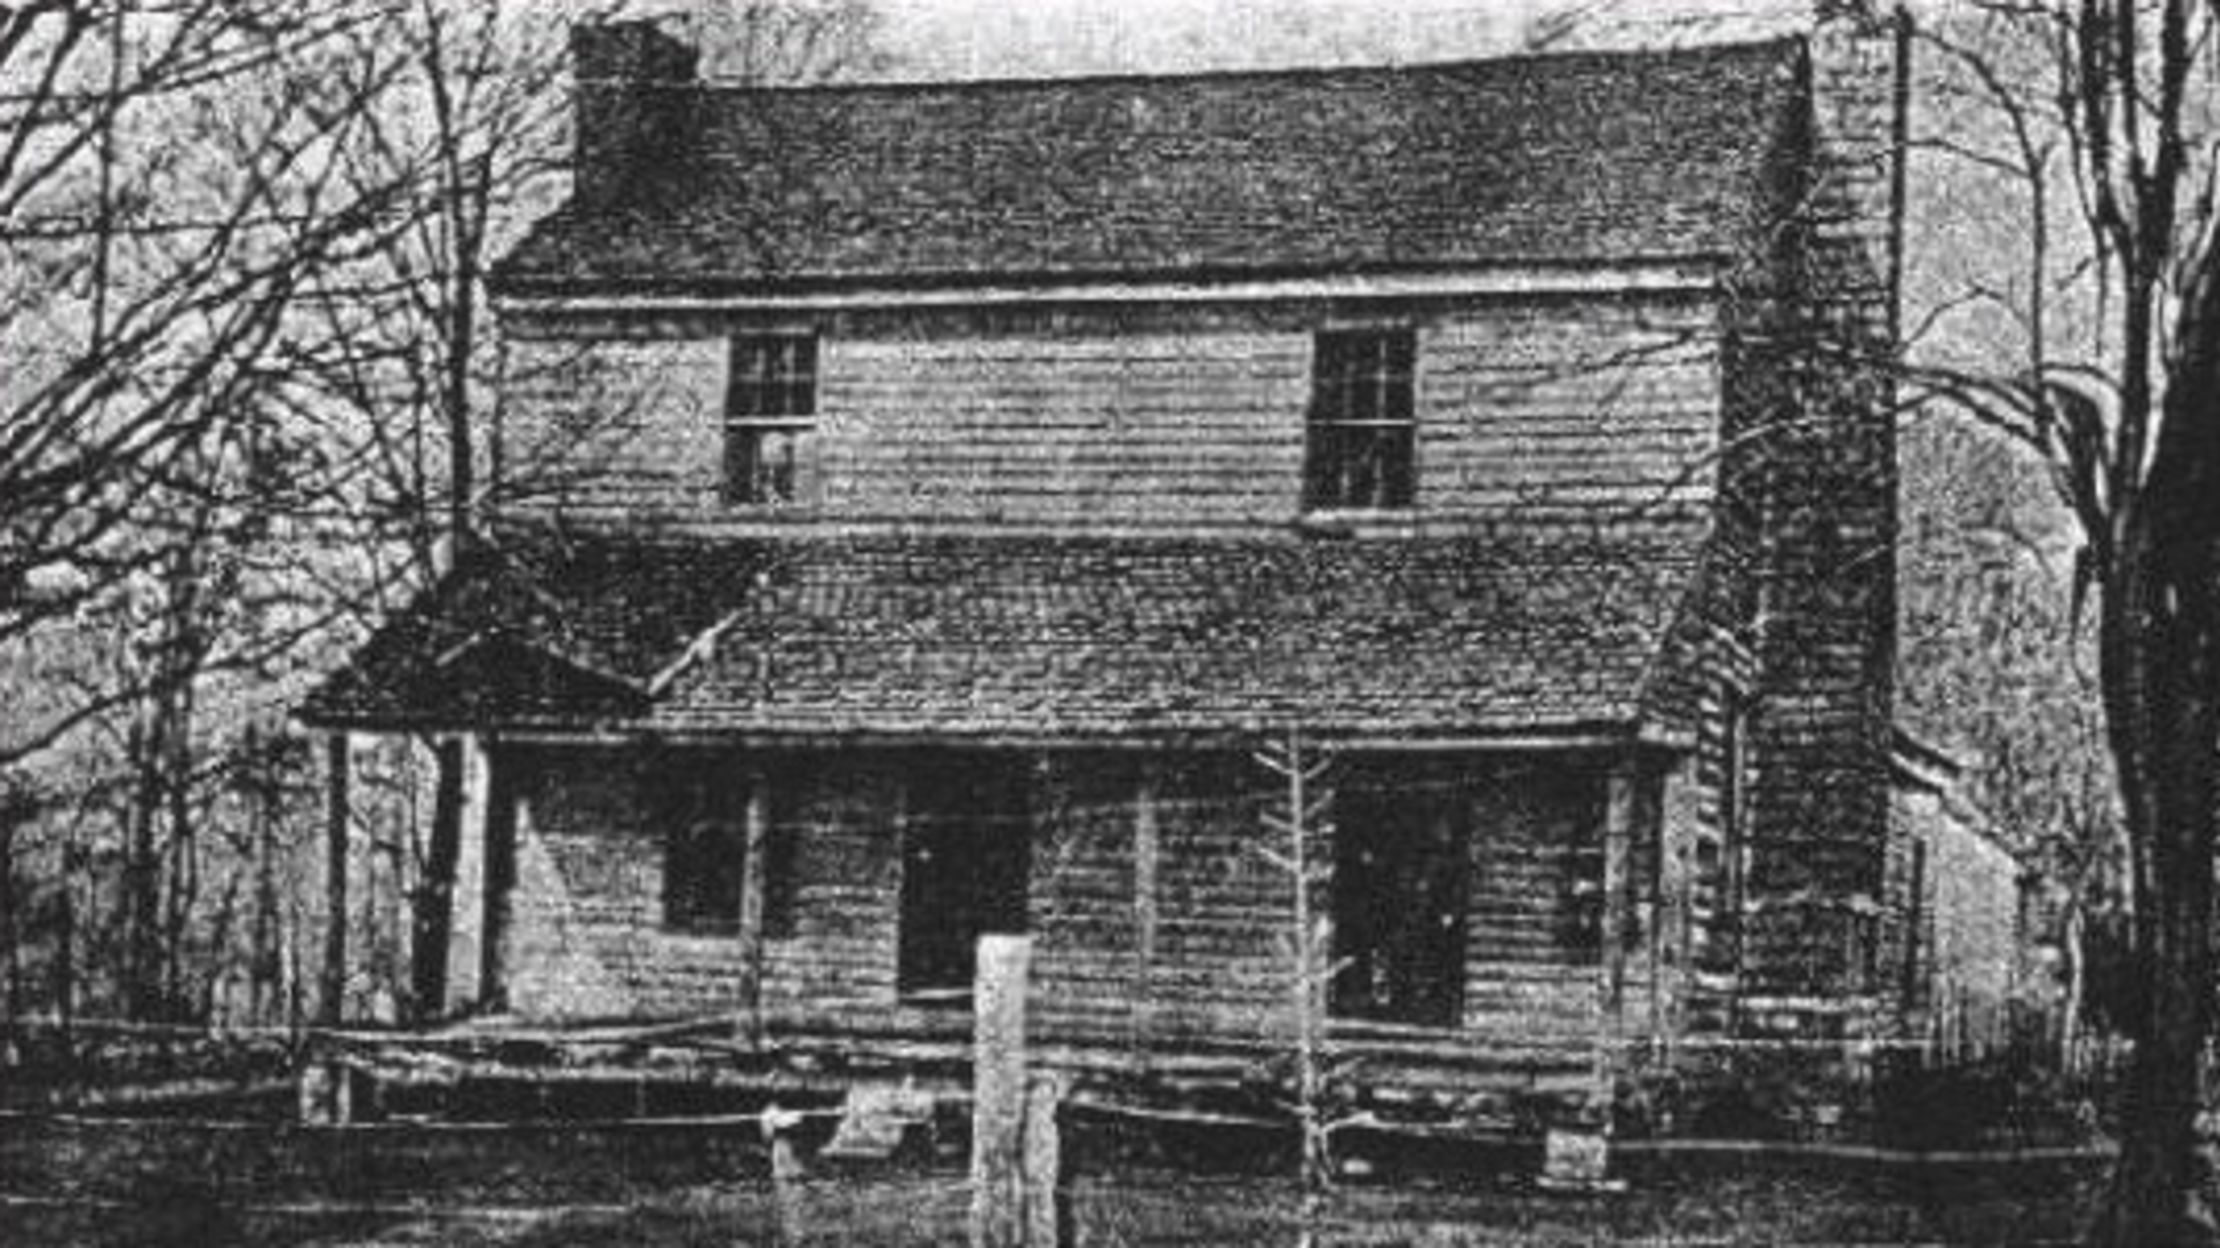 An old photo of the home of the Bells